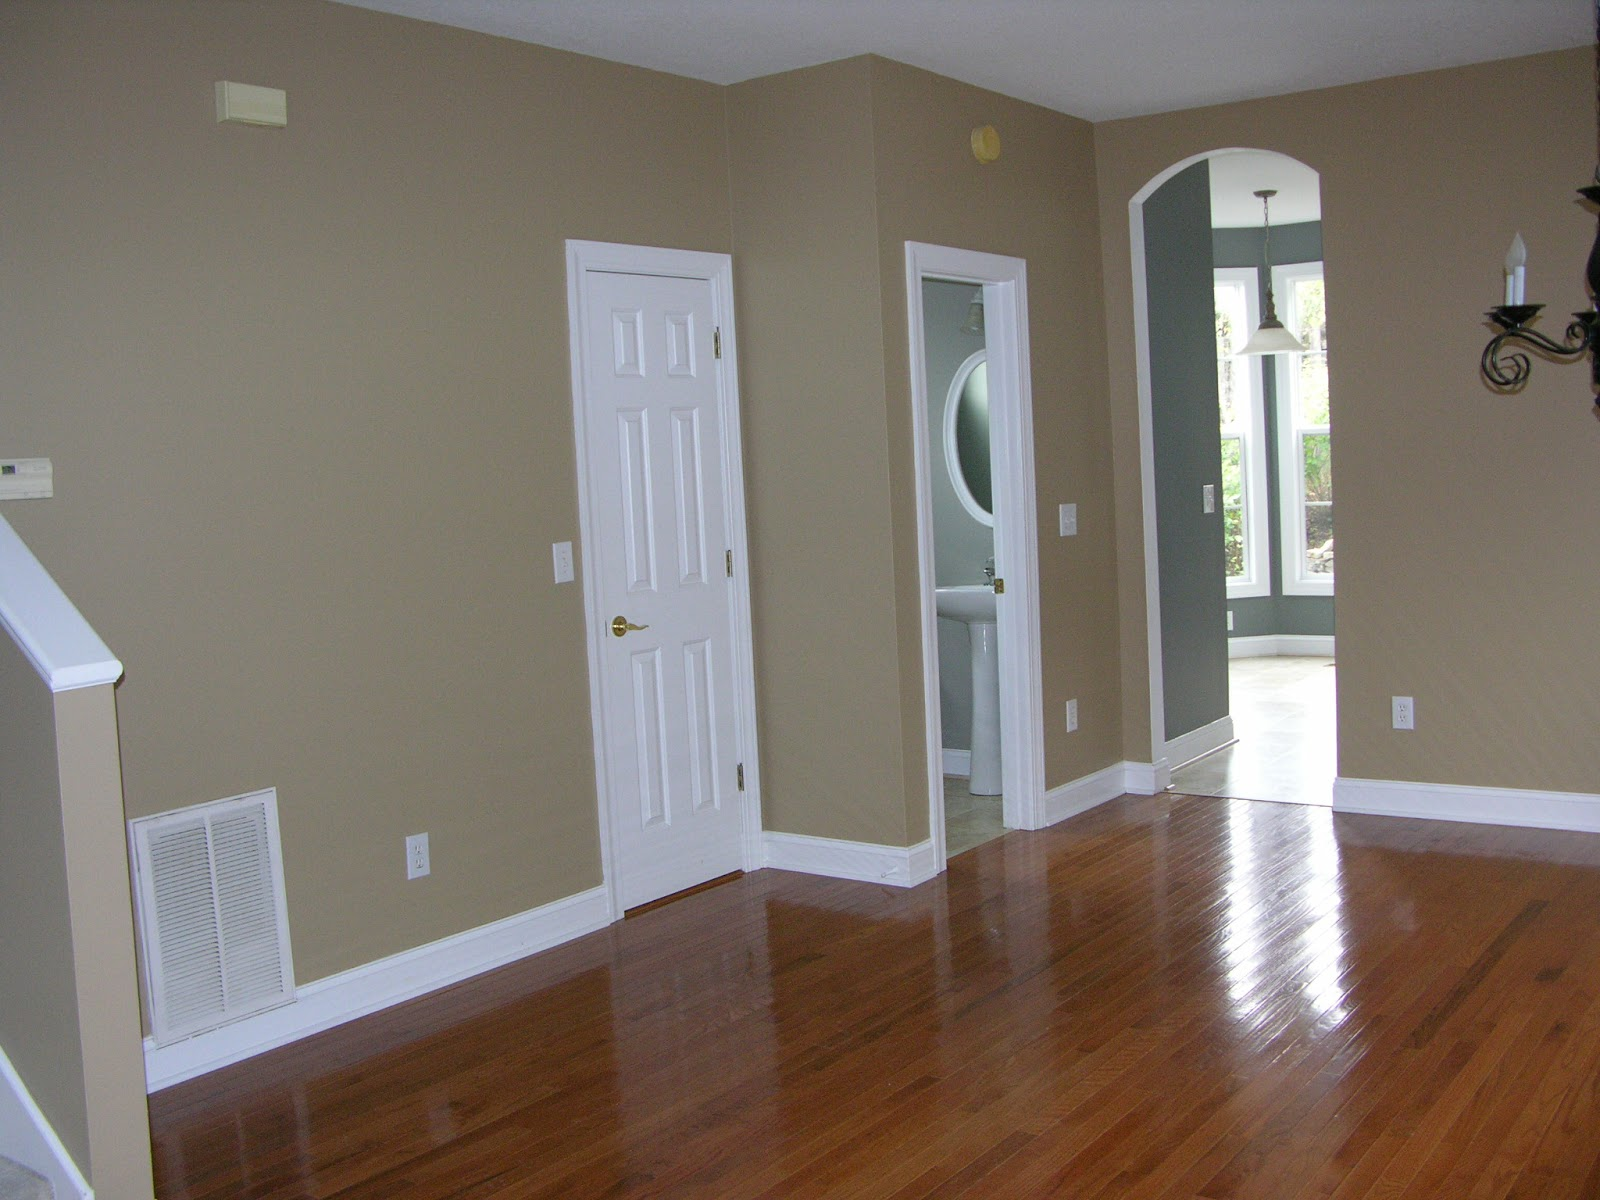 Refinished interior doors may have white color scheme